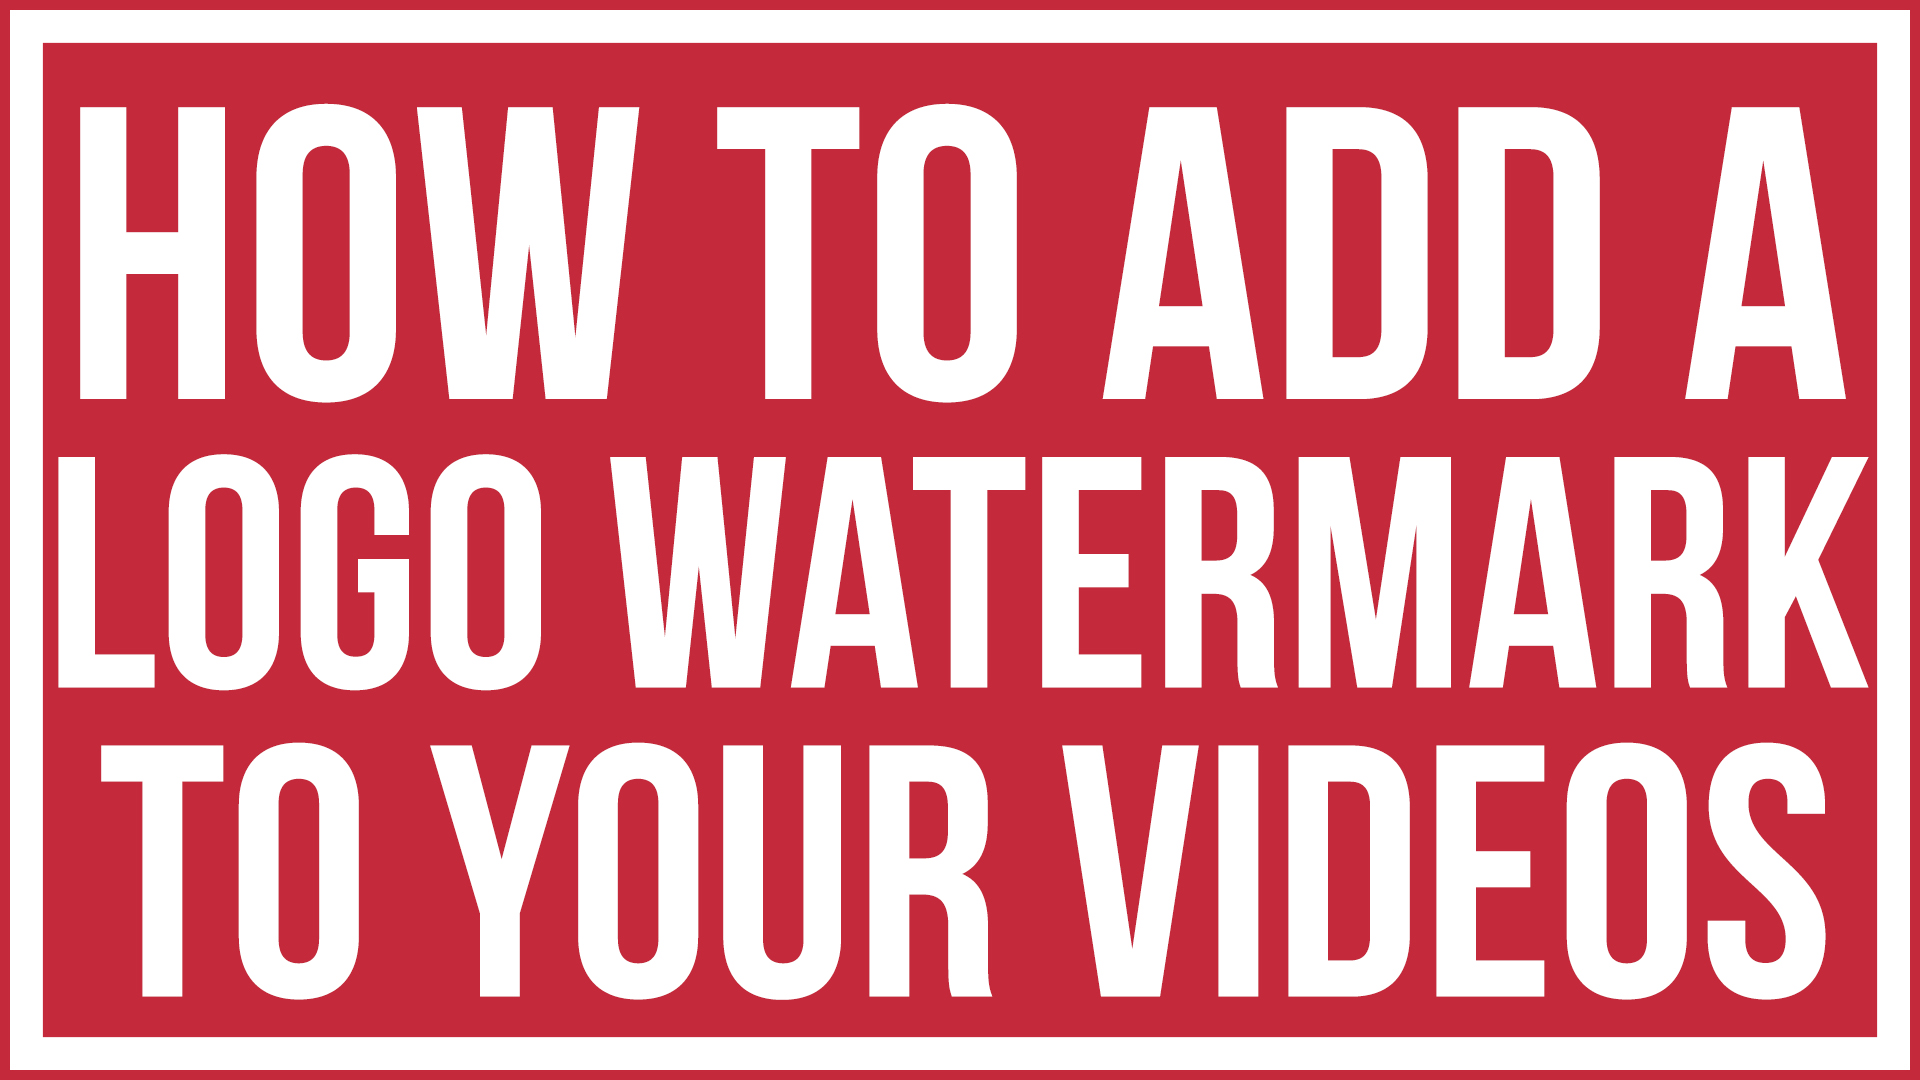 How To Add A Logo Watermark To Your YouTube Videos - YouTube